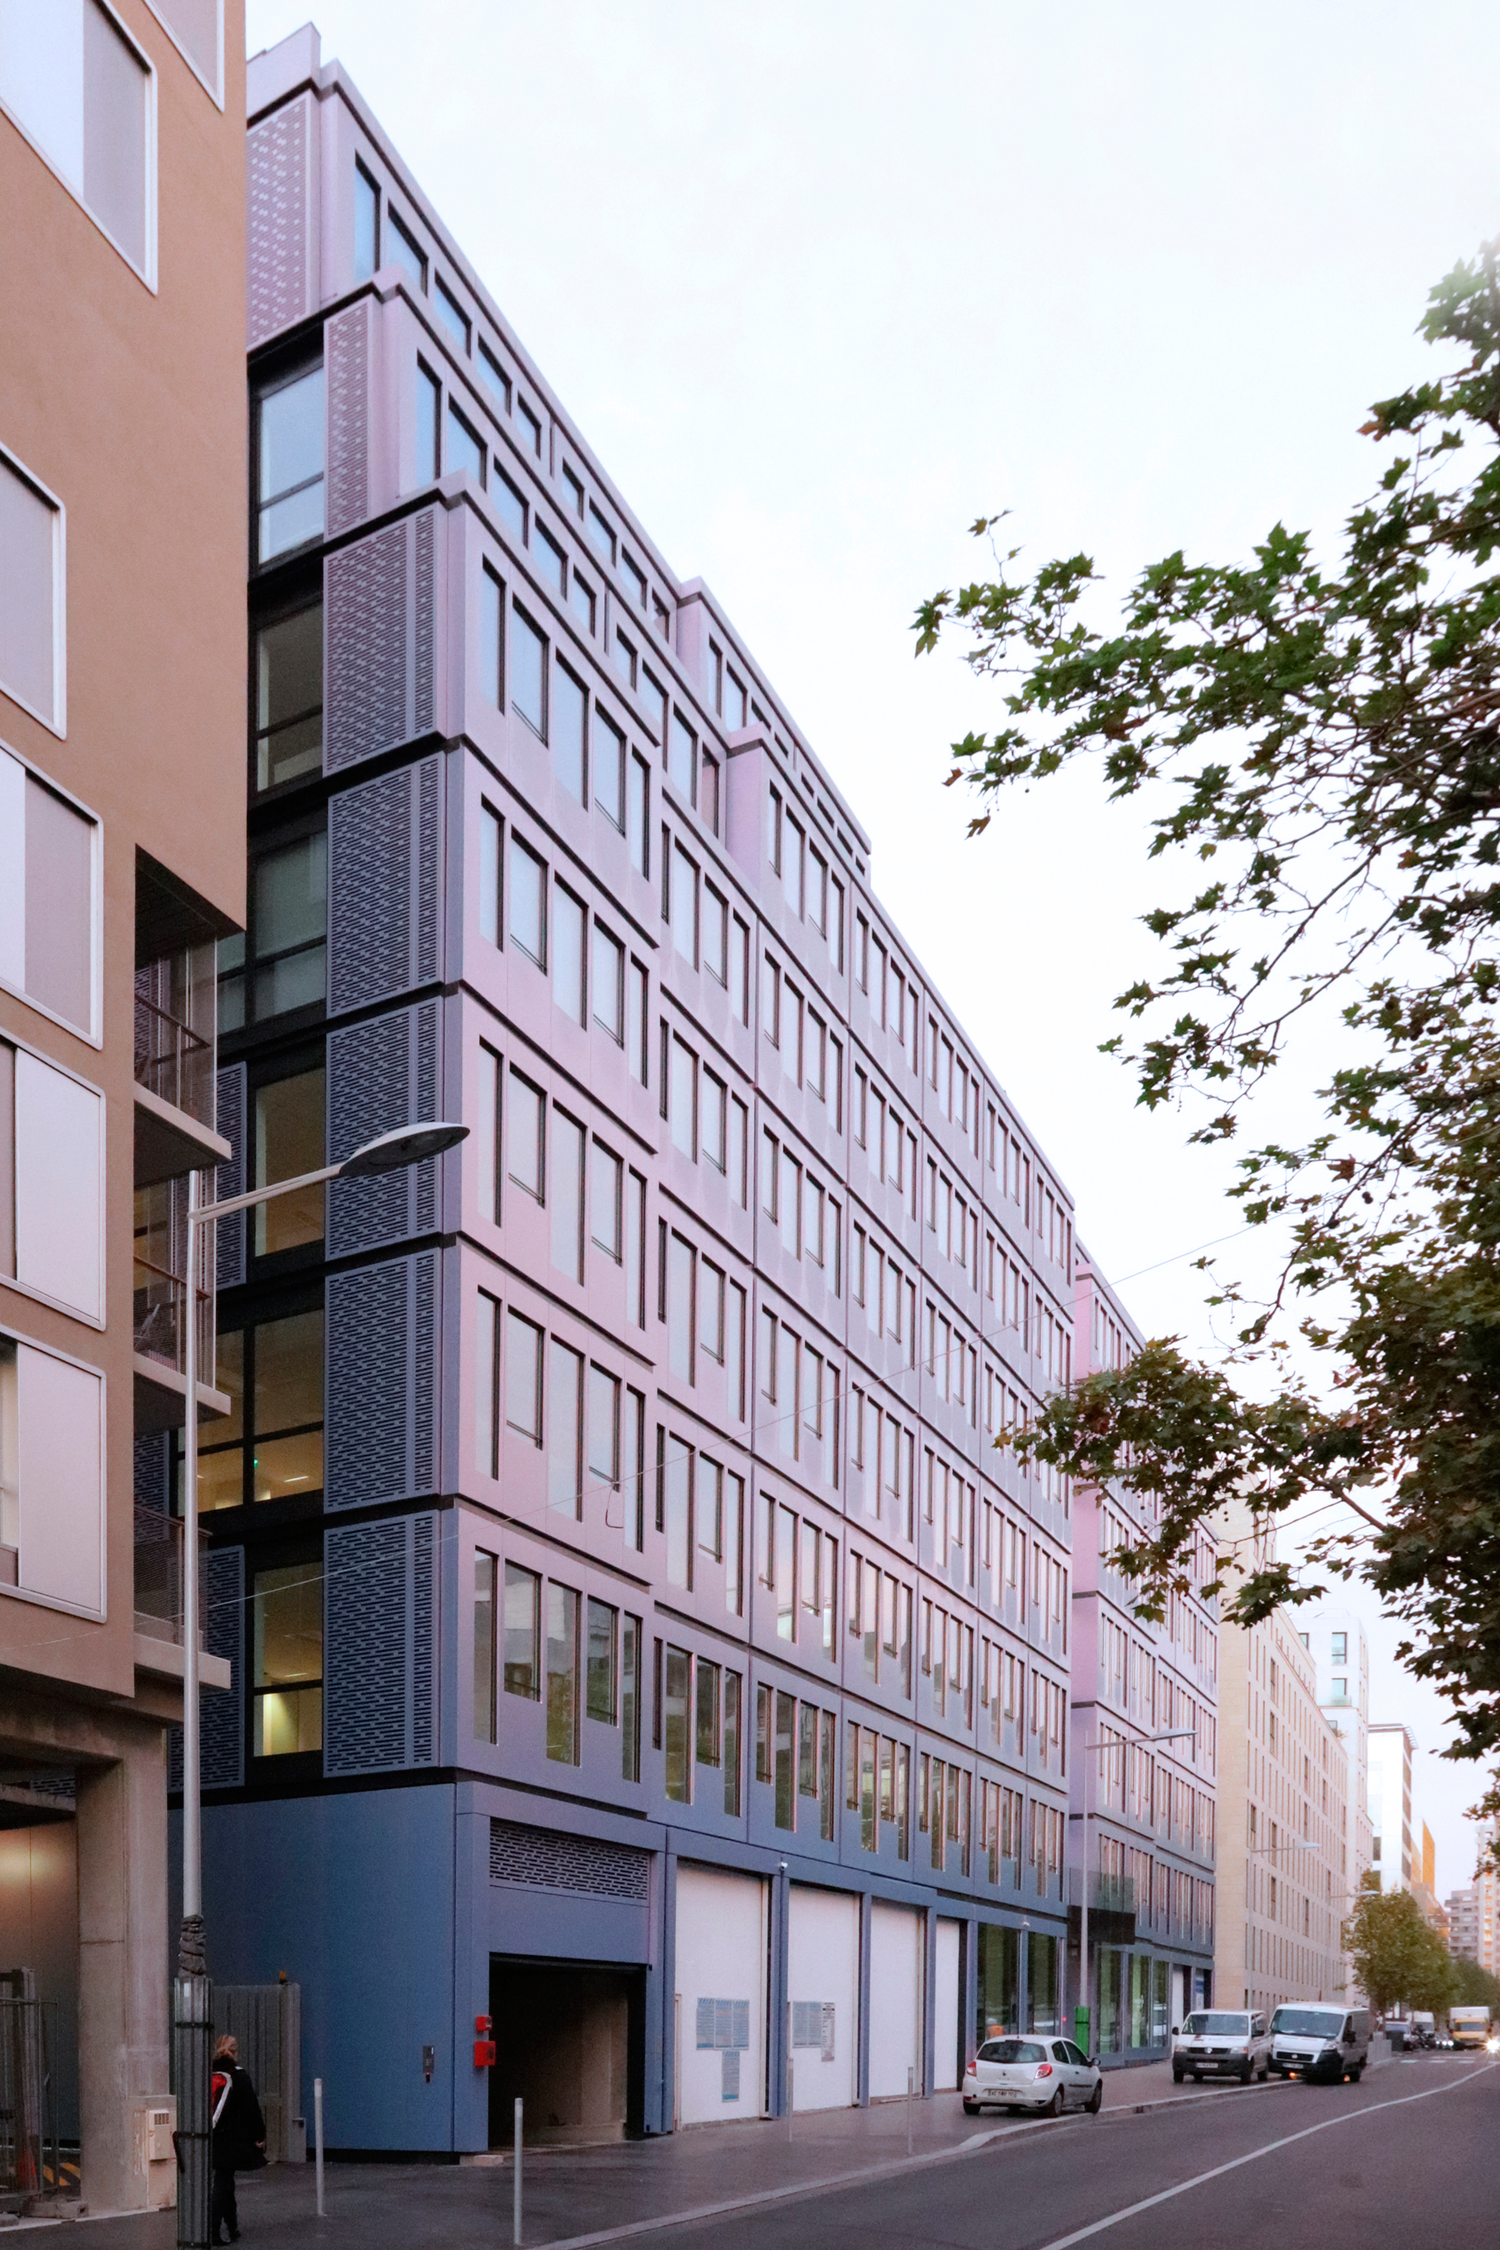 In situ office building boulogne billancourt loci anima - Bureau de change boulogne billancourt ...